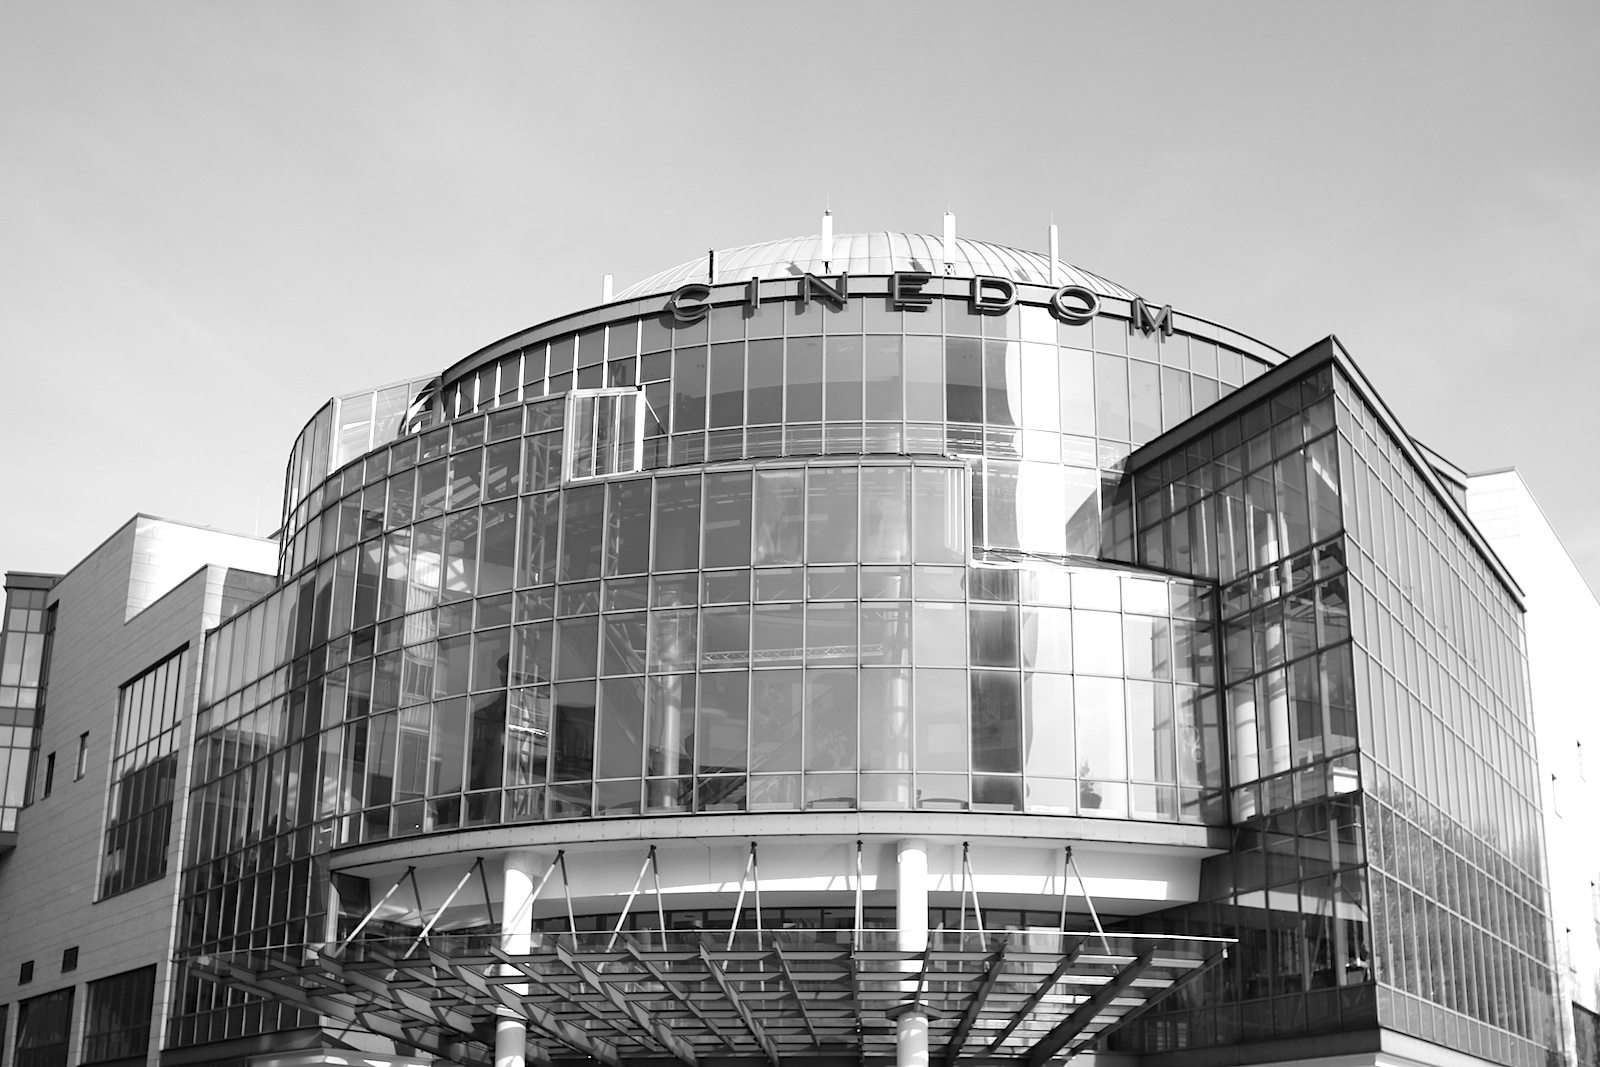 Cinedom, 1990/1991.  The glass rotunda of the multiplex cinema was designed by Zeidler Partnership Architects.